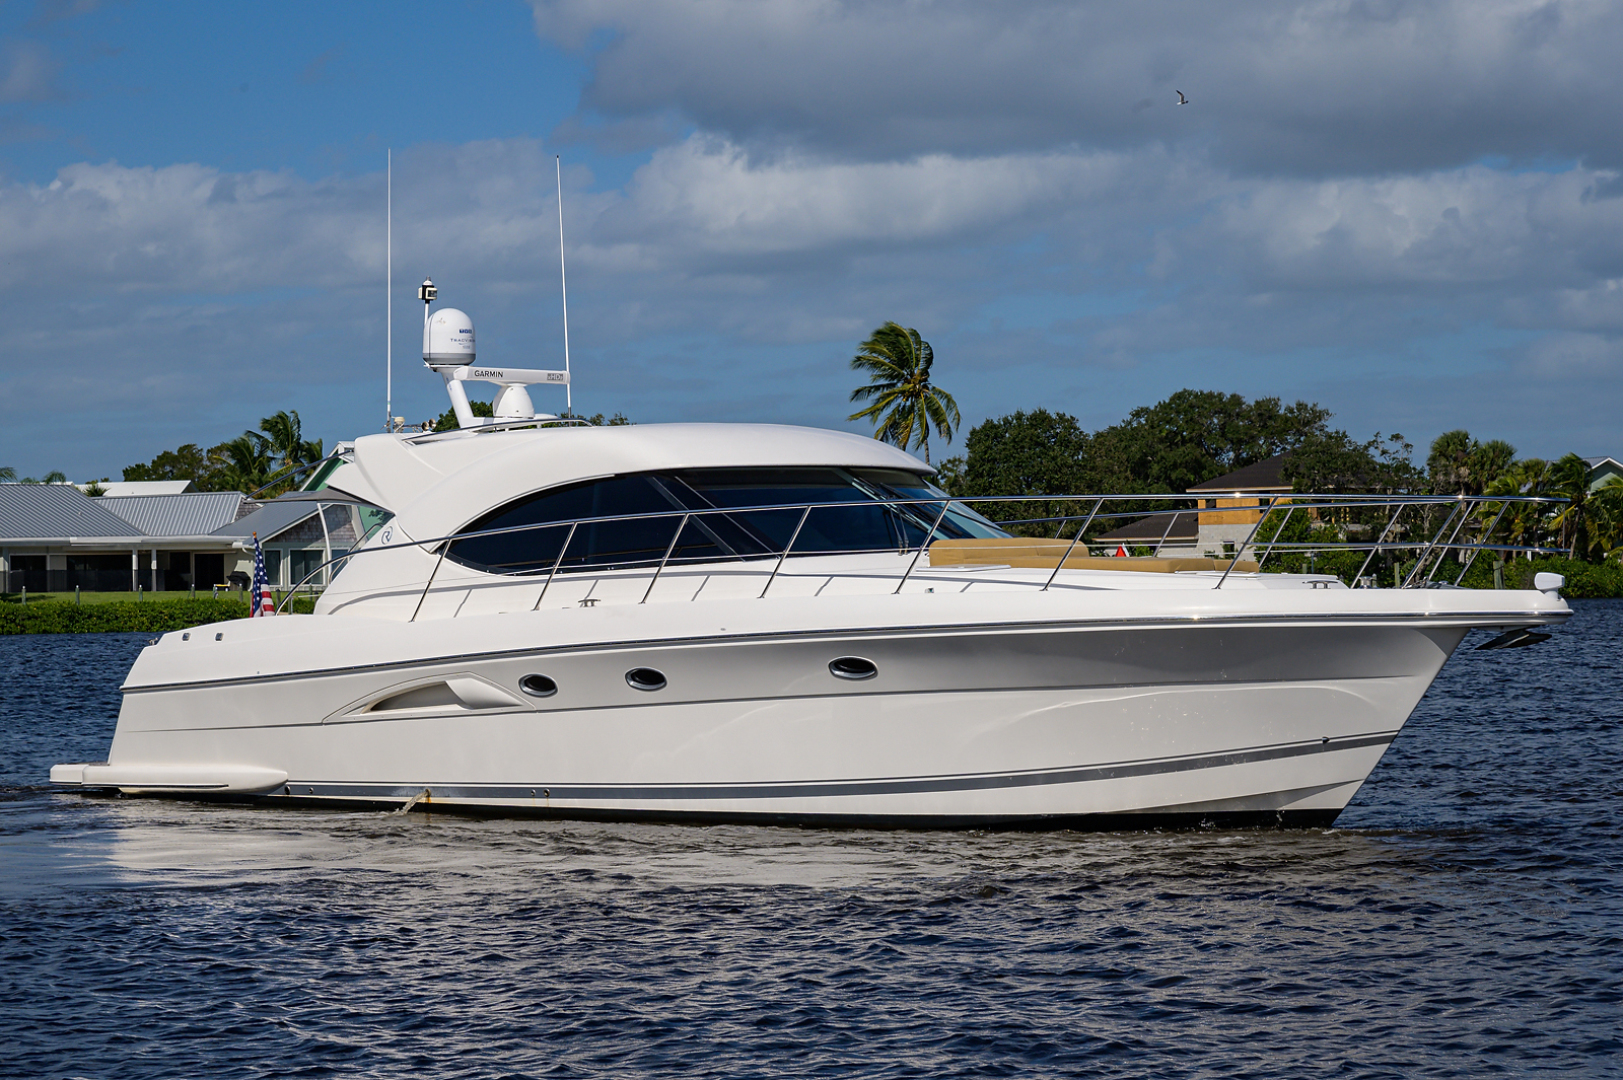 Riviera-5000 Sport Yacht 2012-Lady J Palm Beach-Florida-United States-1553495 | Thumbnail